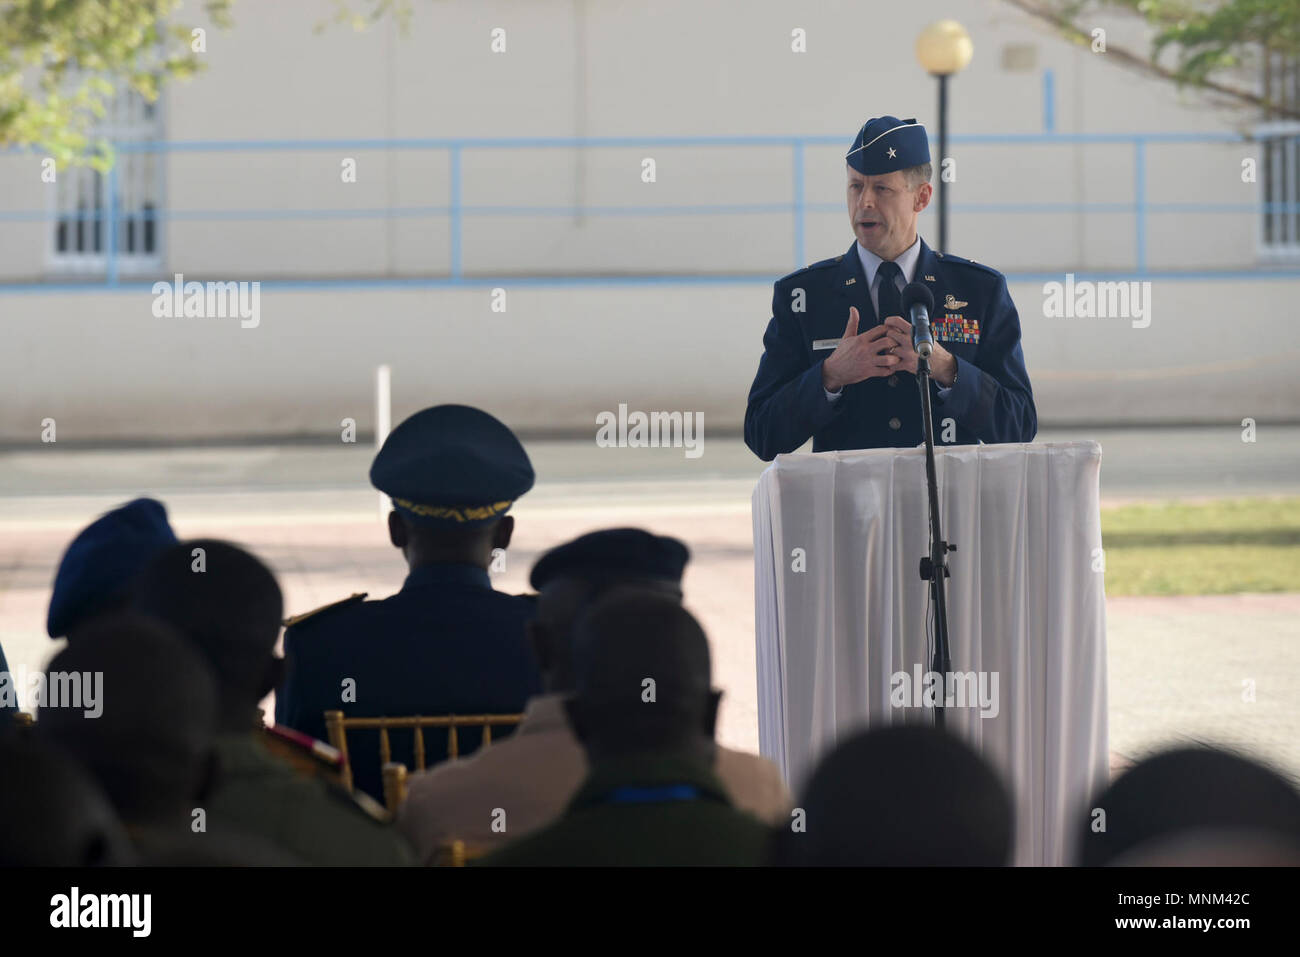 U.S. Air Force Brig. Gen. Dieter Bareihs, U.S. Air Forces in Africa director of plans, programs and analyses, speaks during the opening ceremony of African Partnership Flight Senegal at Captain Andalla Cissé Air Base, Senegal, March 19, 2018. The APF program is U.S. Air Forces in Africa's premier security cooperation program with African partner nations to improve professional military aviation knowledge and skills. - Stock Image